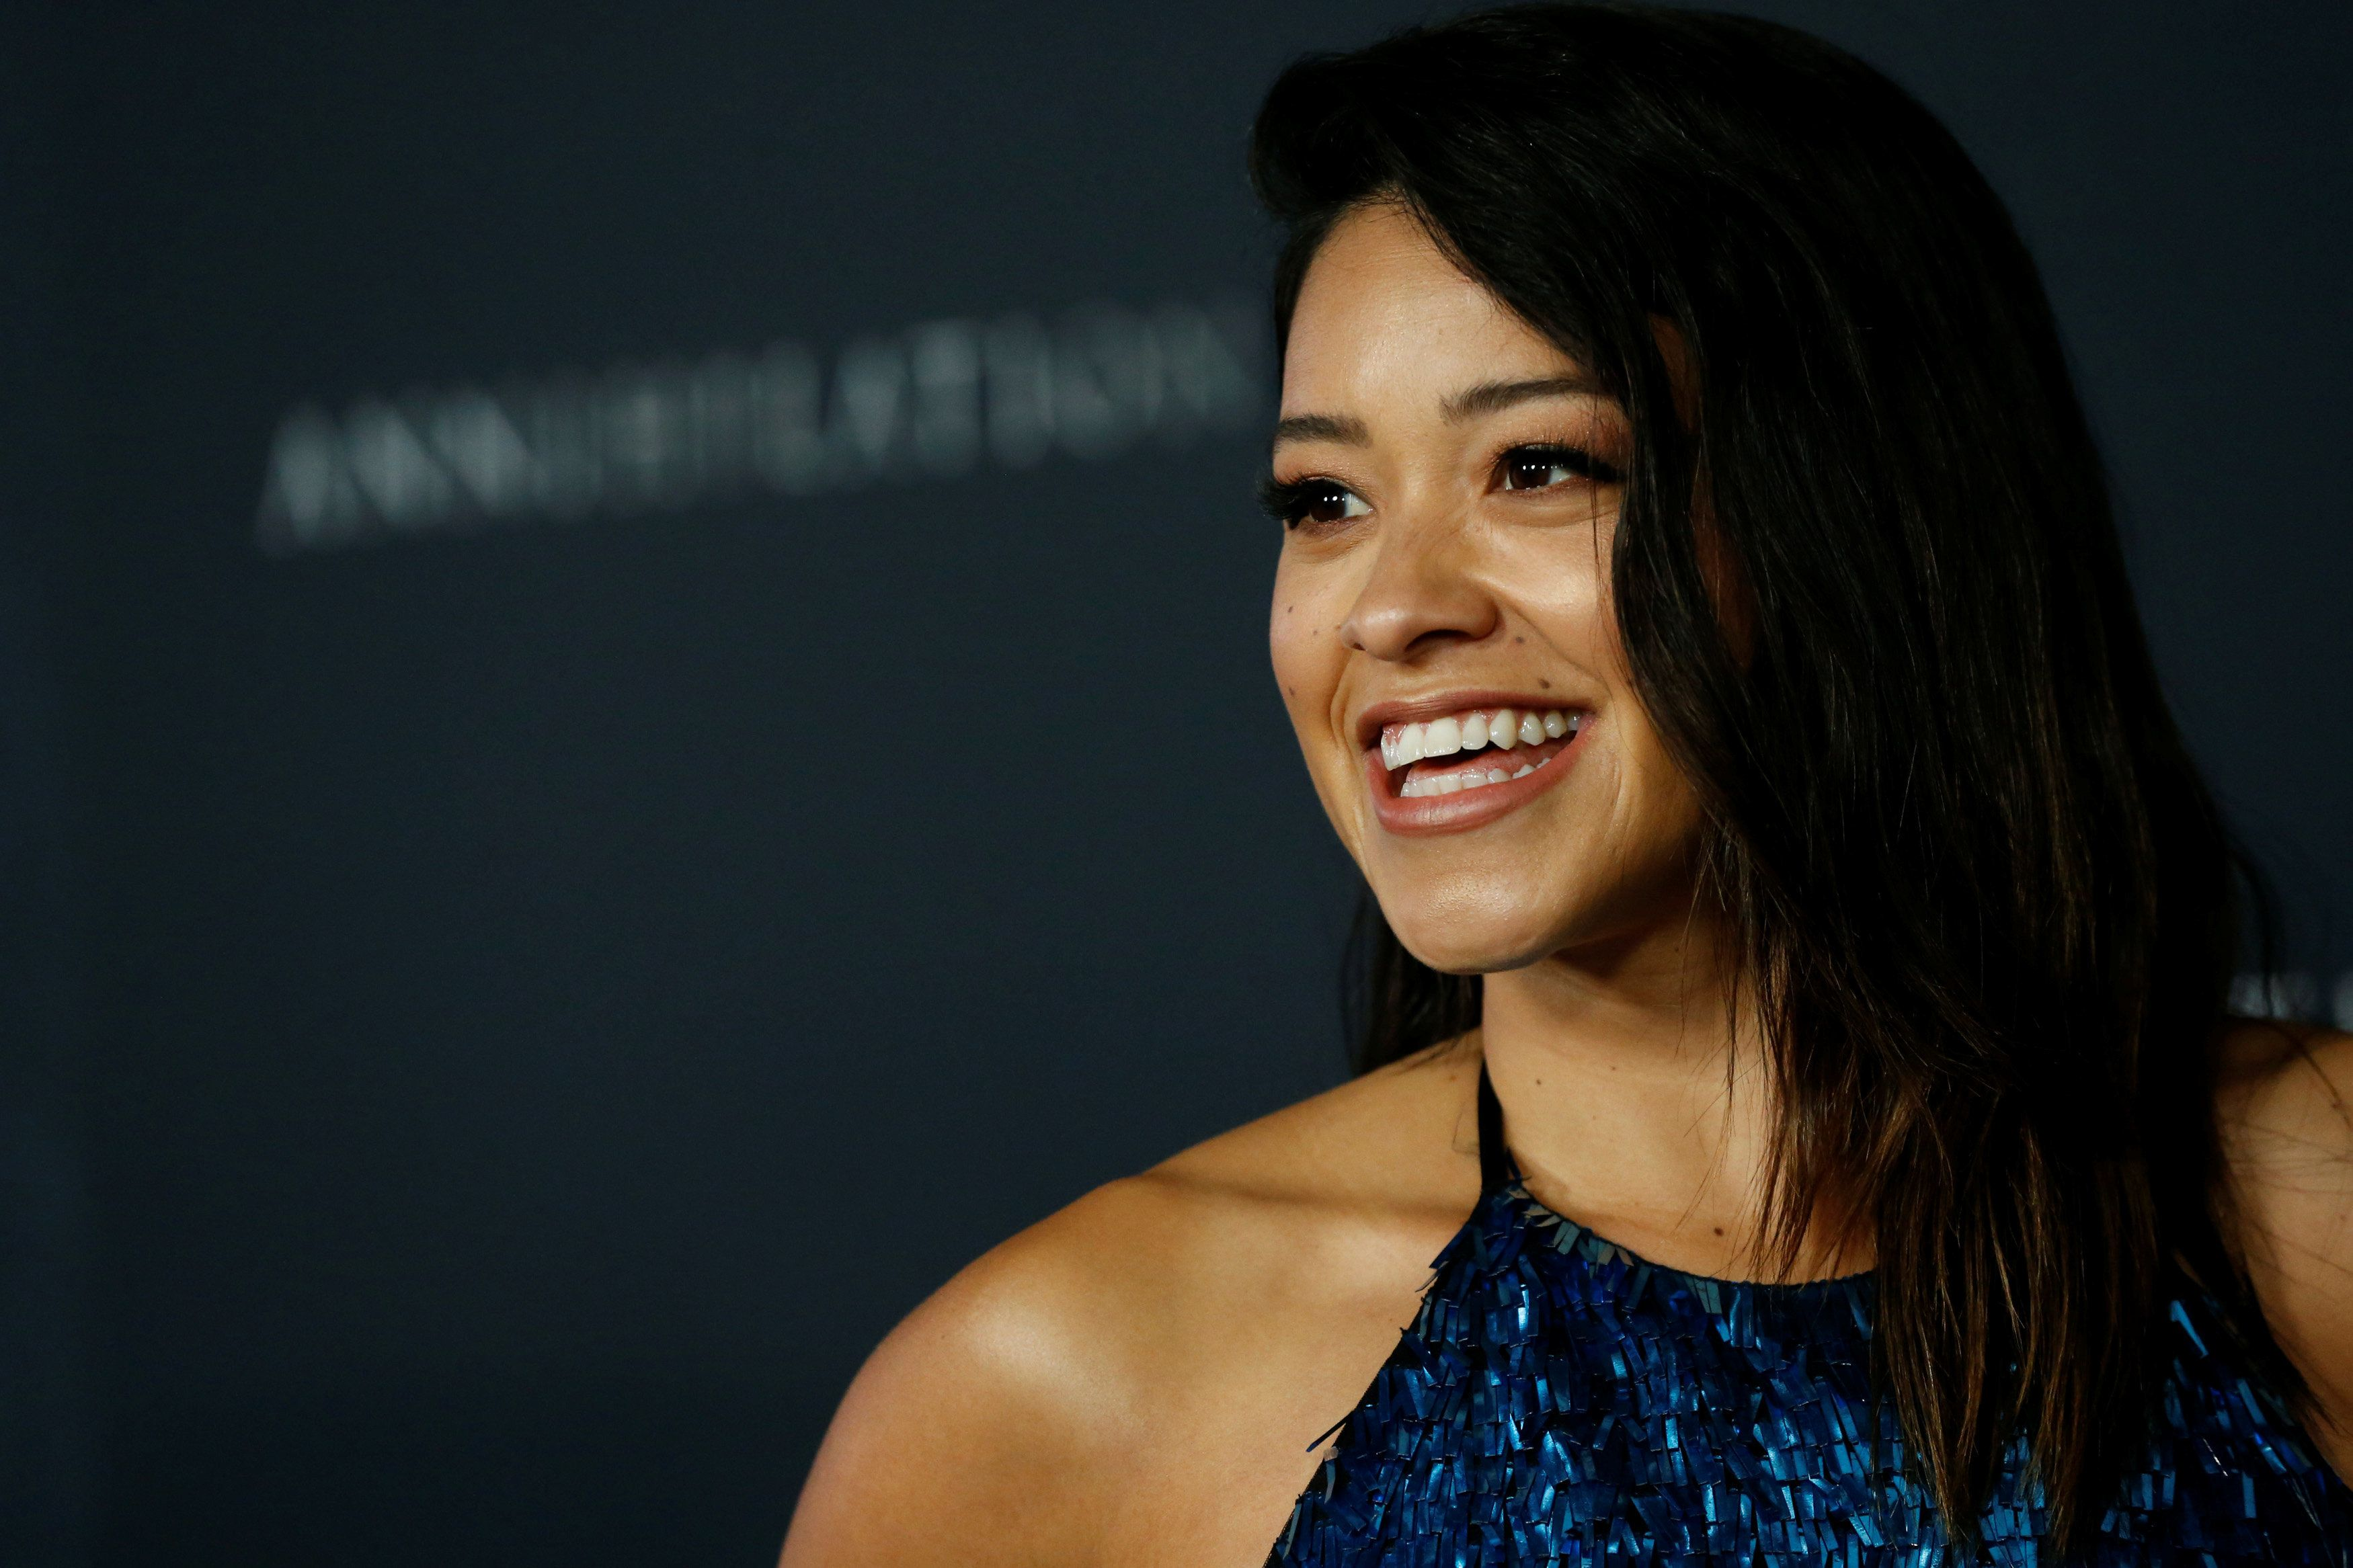 Gina Rodriguez Wants Fewer Girls To Miss School Because Of Their